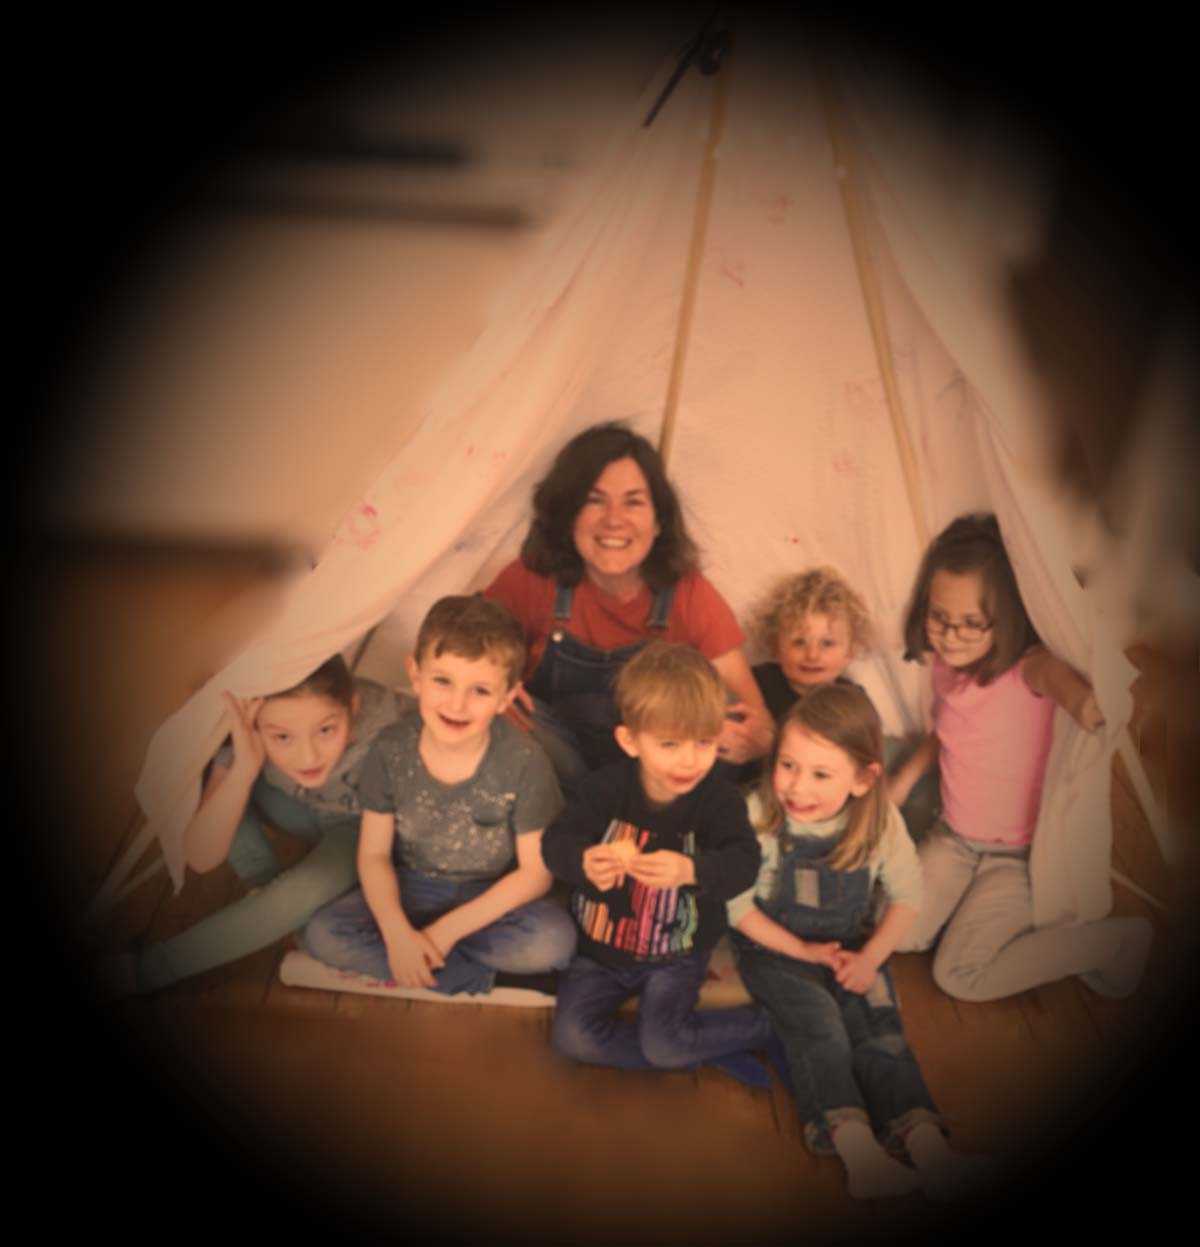 Beccy and story-trails children sitting in a teepee and smiling.